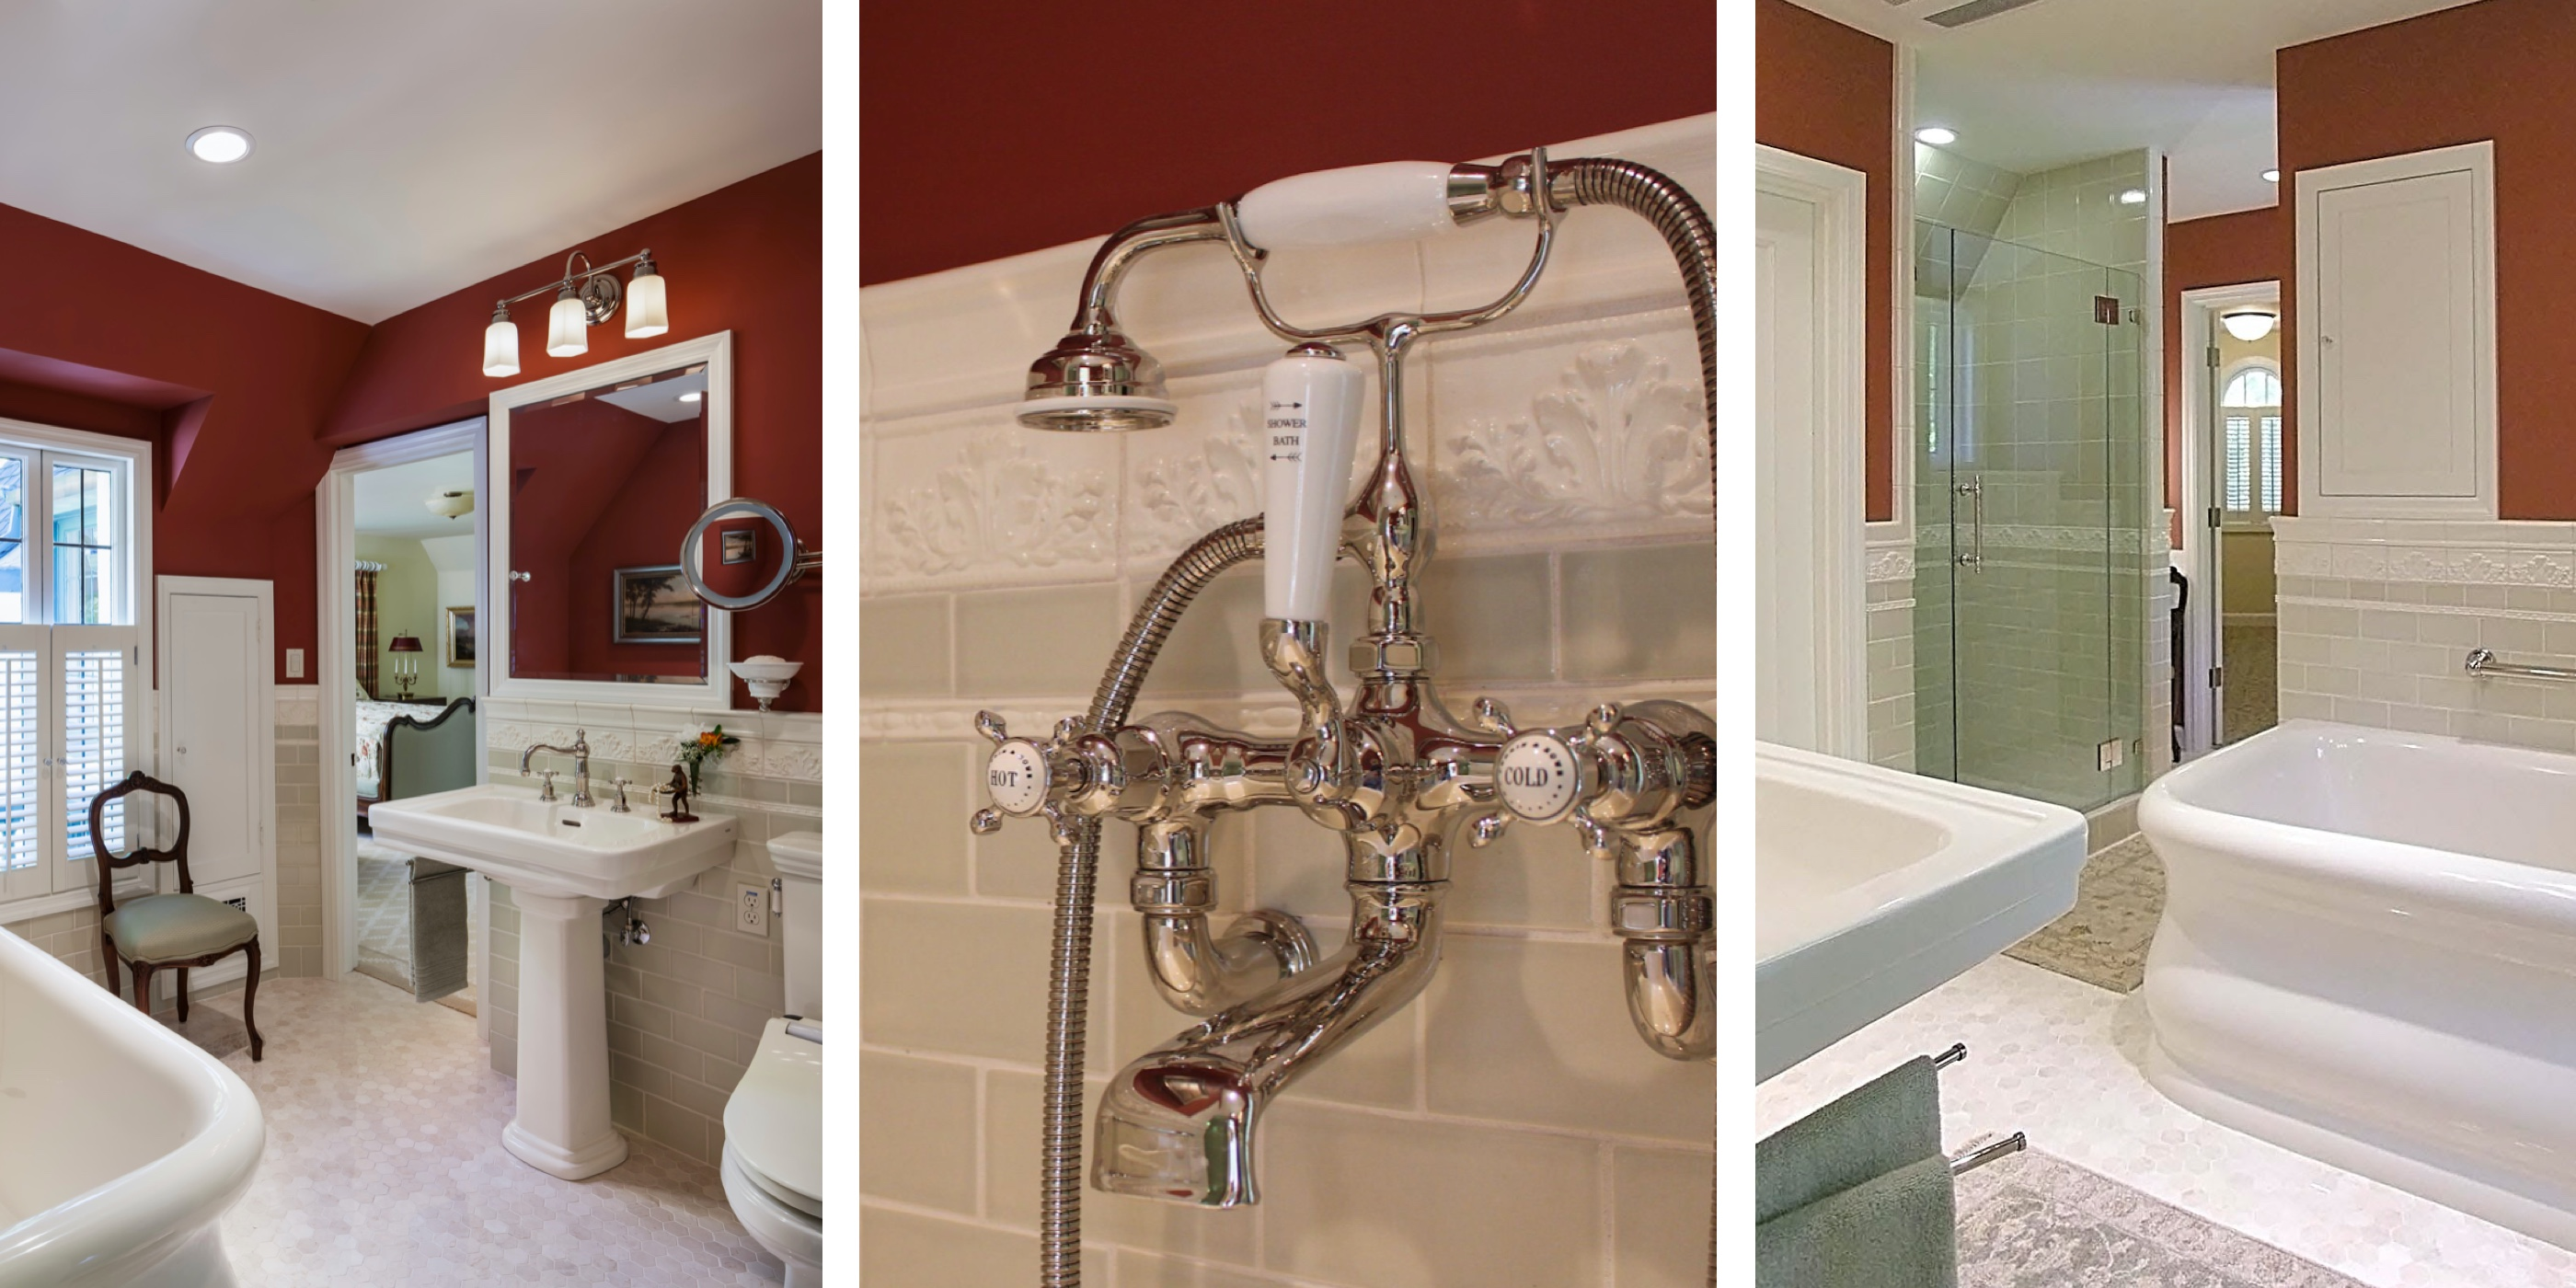 Luxury Bathroom Remodels in the East Bay - Waterworks Empire Tub - Rohl Edwardian Collection Faucet - Separate Shower and Bathtub - Master Bathroom - Custom Kitchens